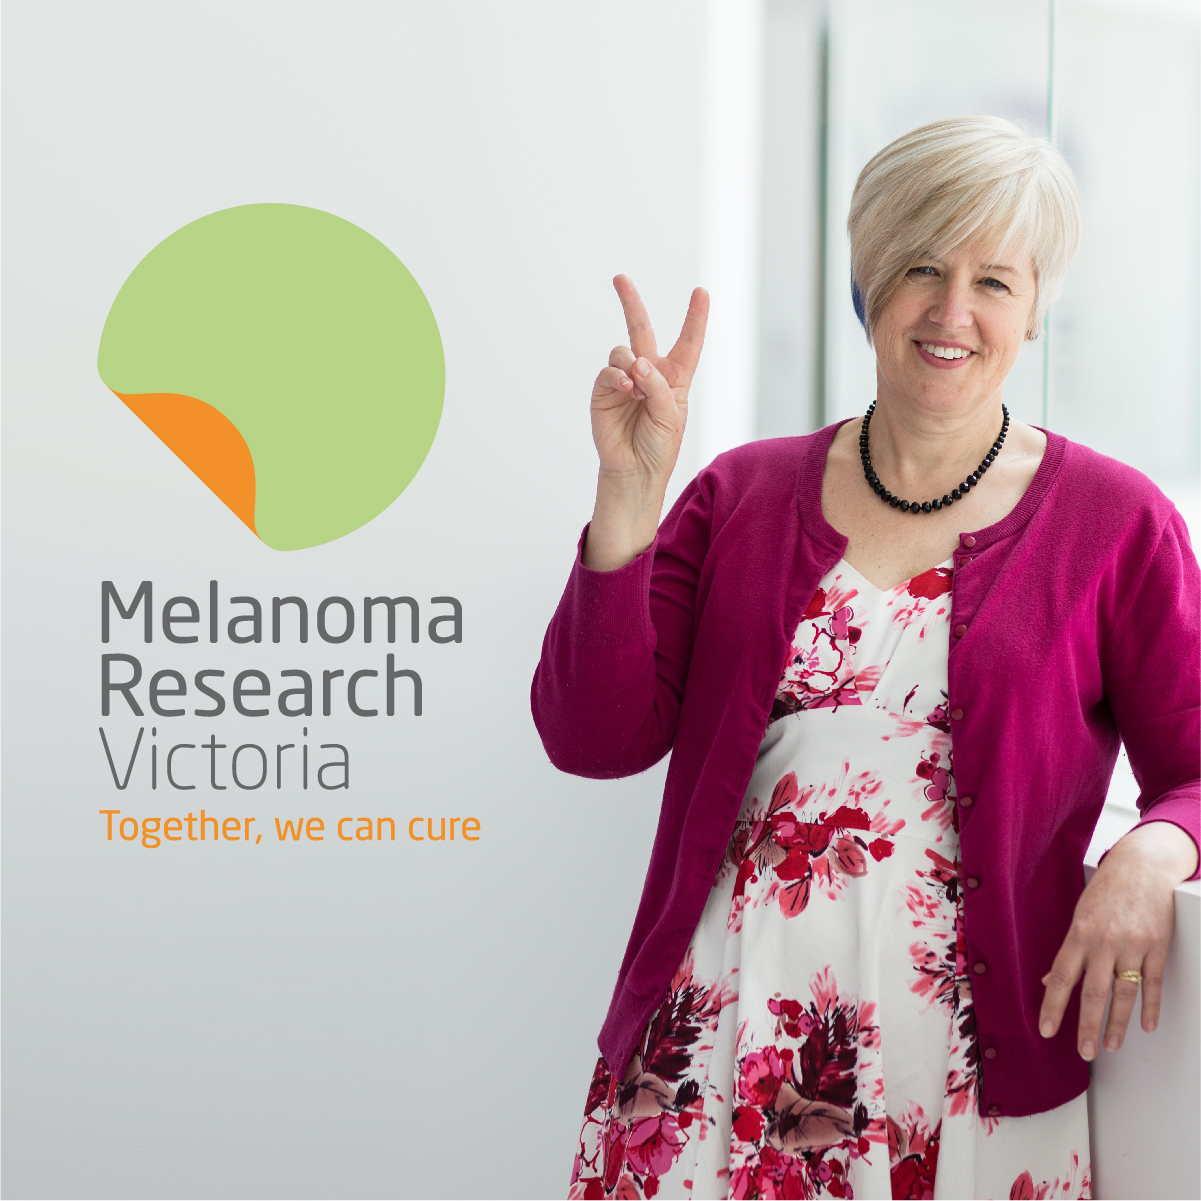 Melanoma Research Victoria Cancer Branding Corporate Davidson Branding Design